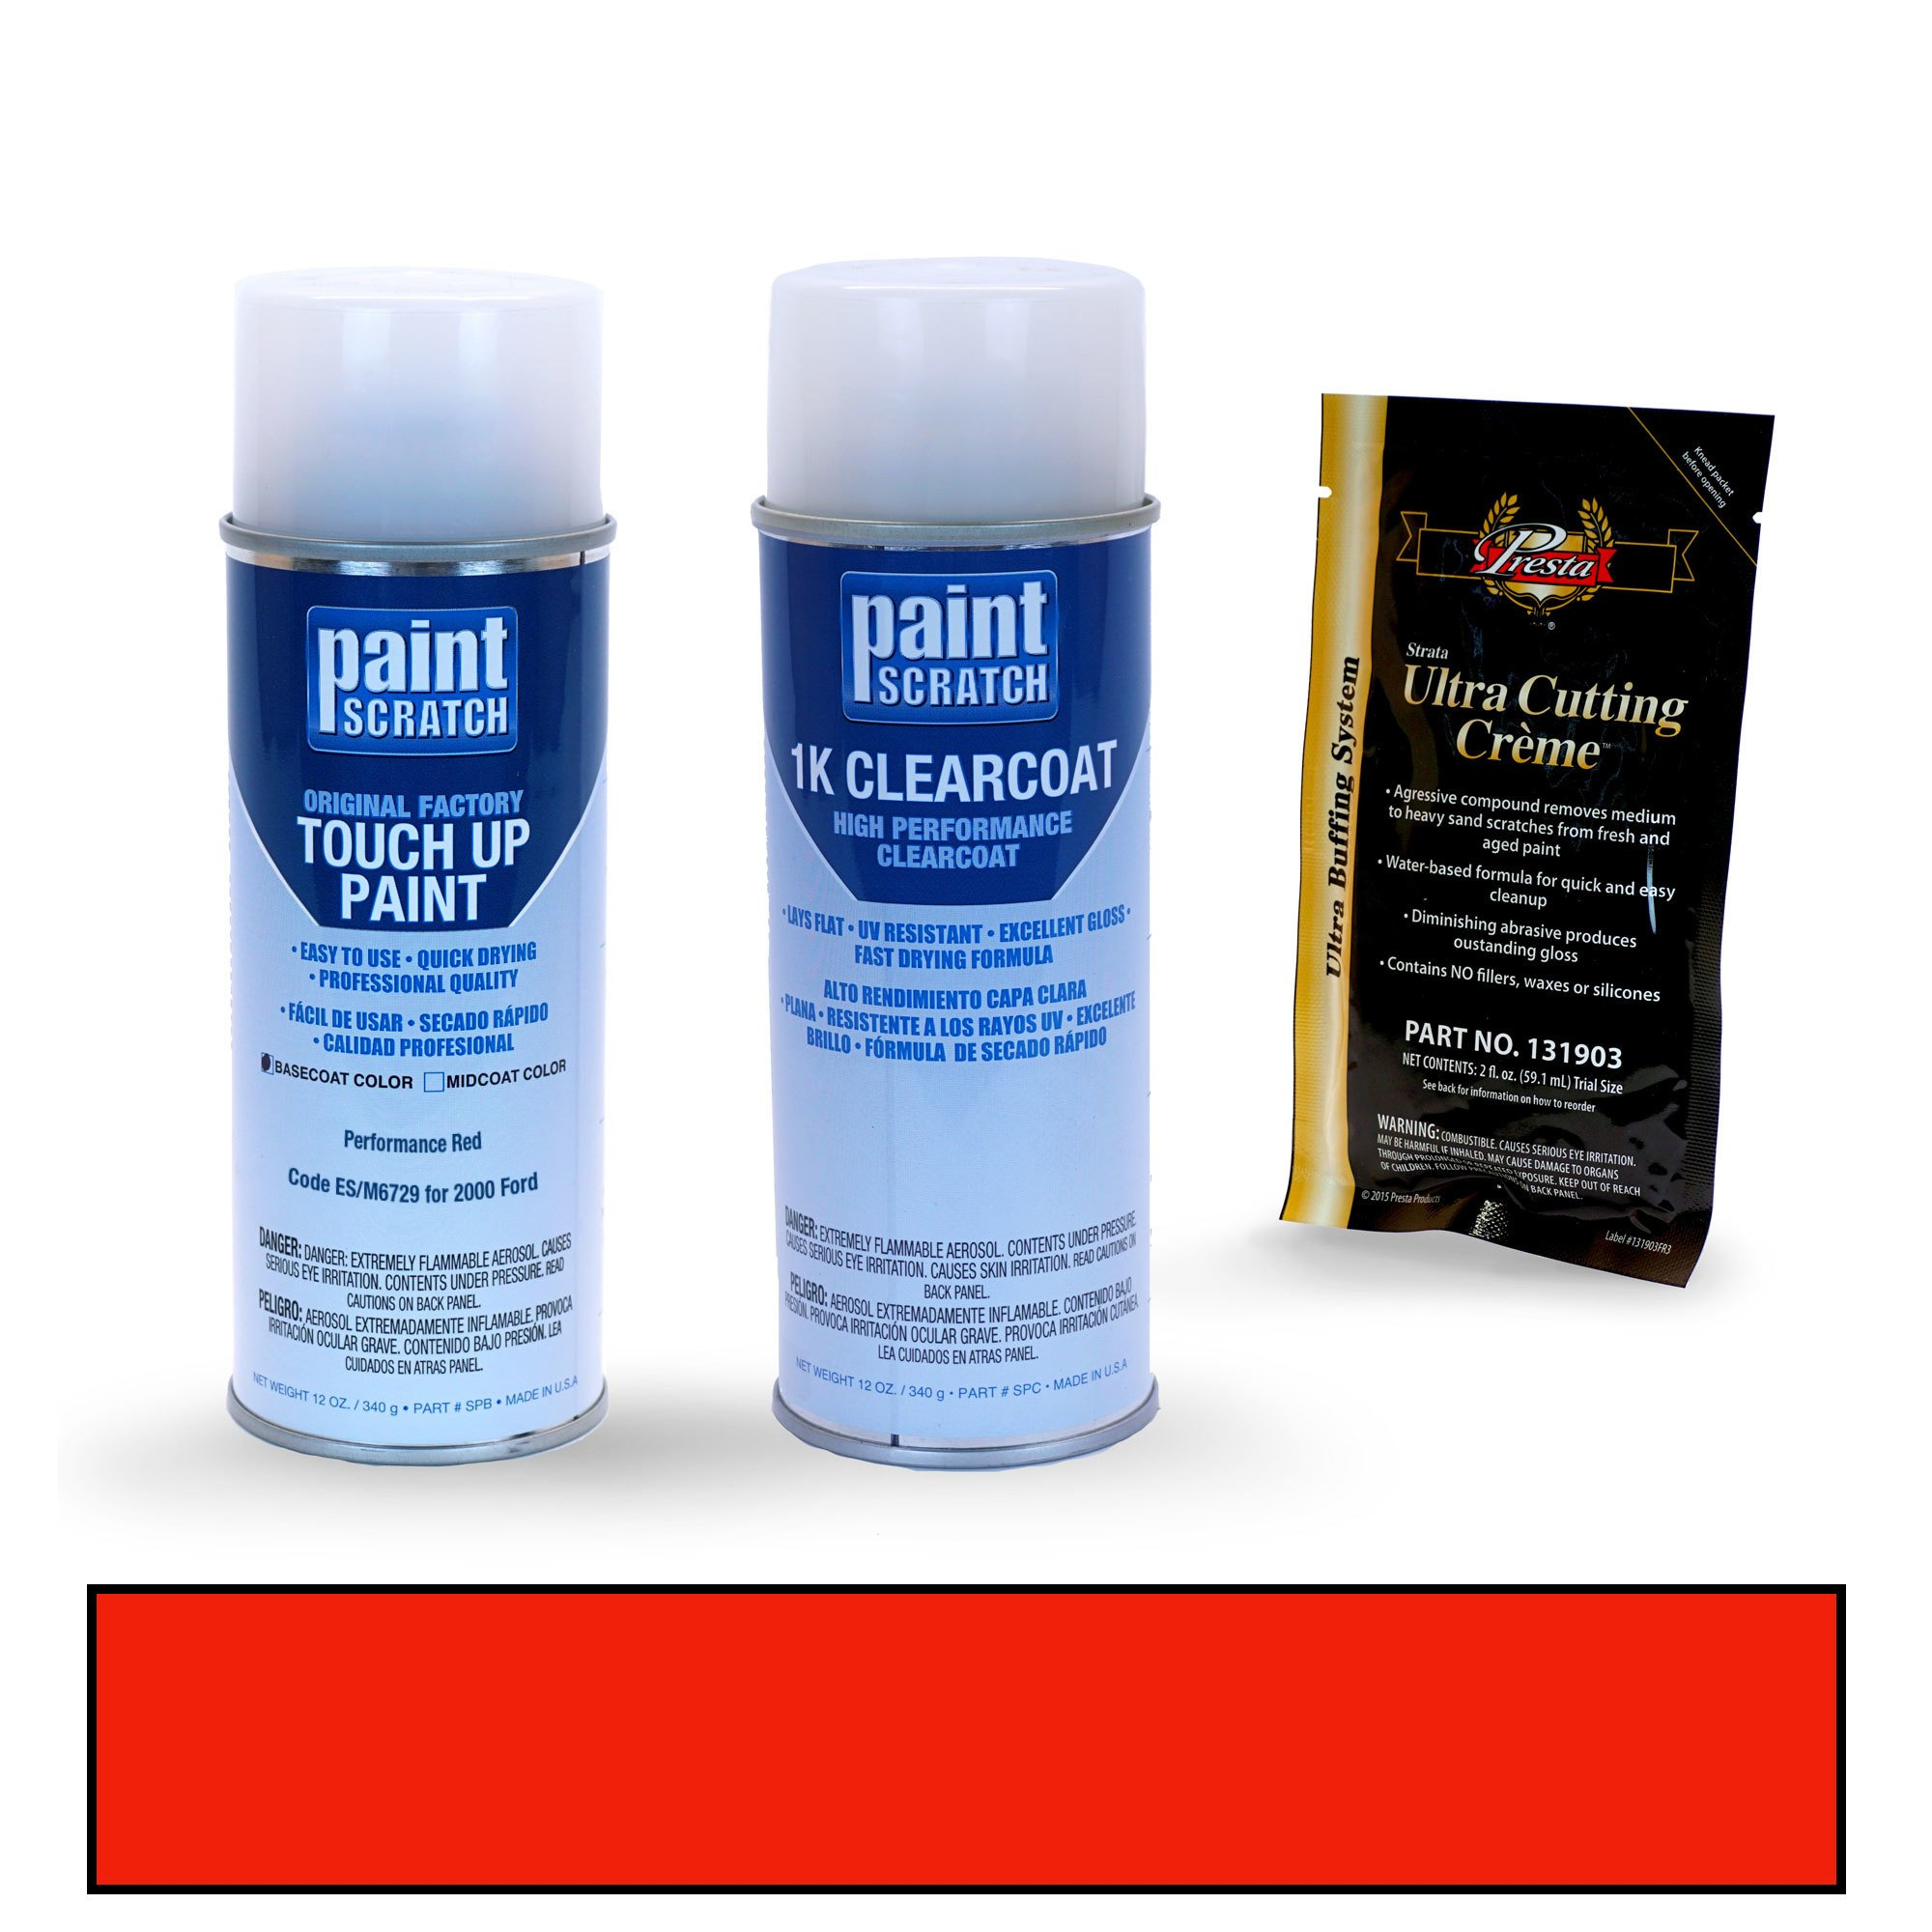 PAINTSCRATCH Performance Red ES/M6729 for 2000 Ford Mustang - Touch Up Paint Spray Can Kit - Original Factory OEM Automotive Paint - Color Match Guaranteed